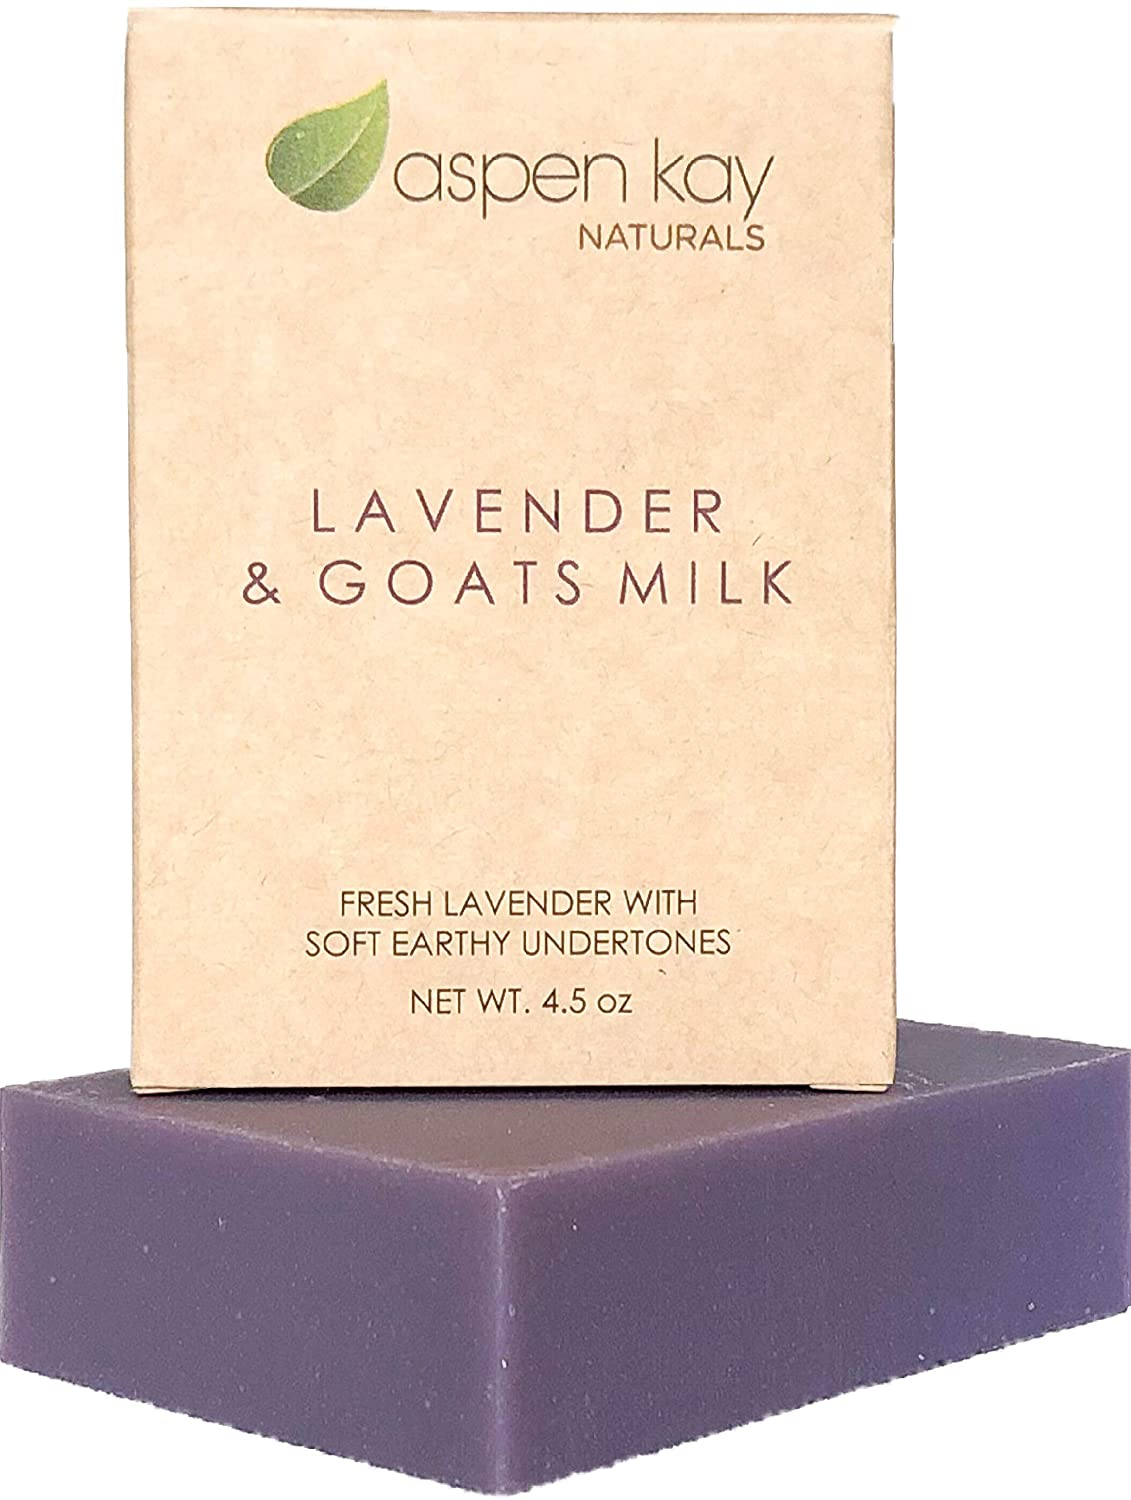 Lavender Goats Milk Soap Bar. Natural and Organic Soap. With Organic Skin Loving Oil. This Soap Makes a Wonderful and Gentle Face Soap or All Over Body Soap. 4oz Bar. 1 Pack : Beauty